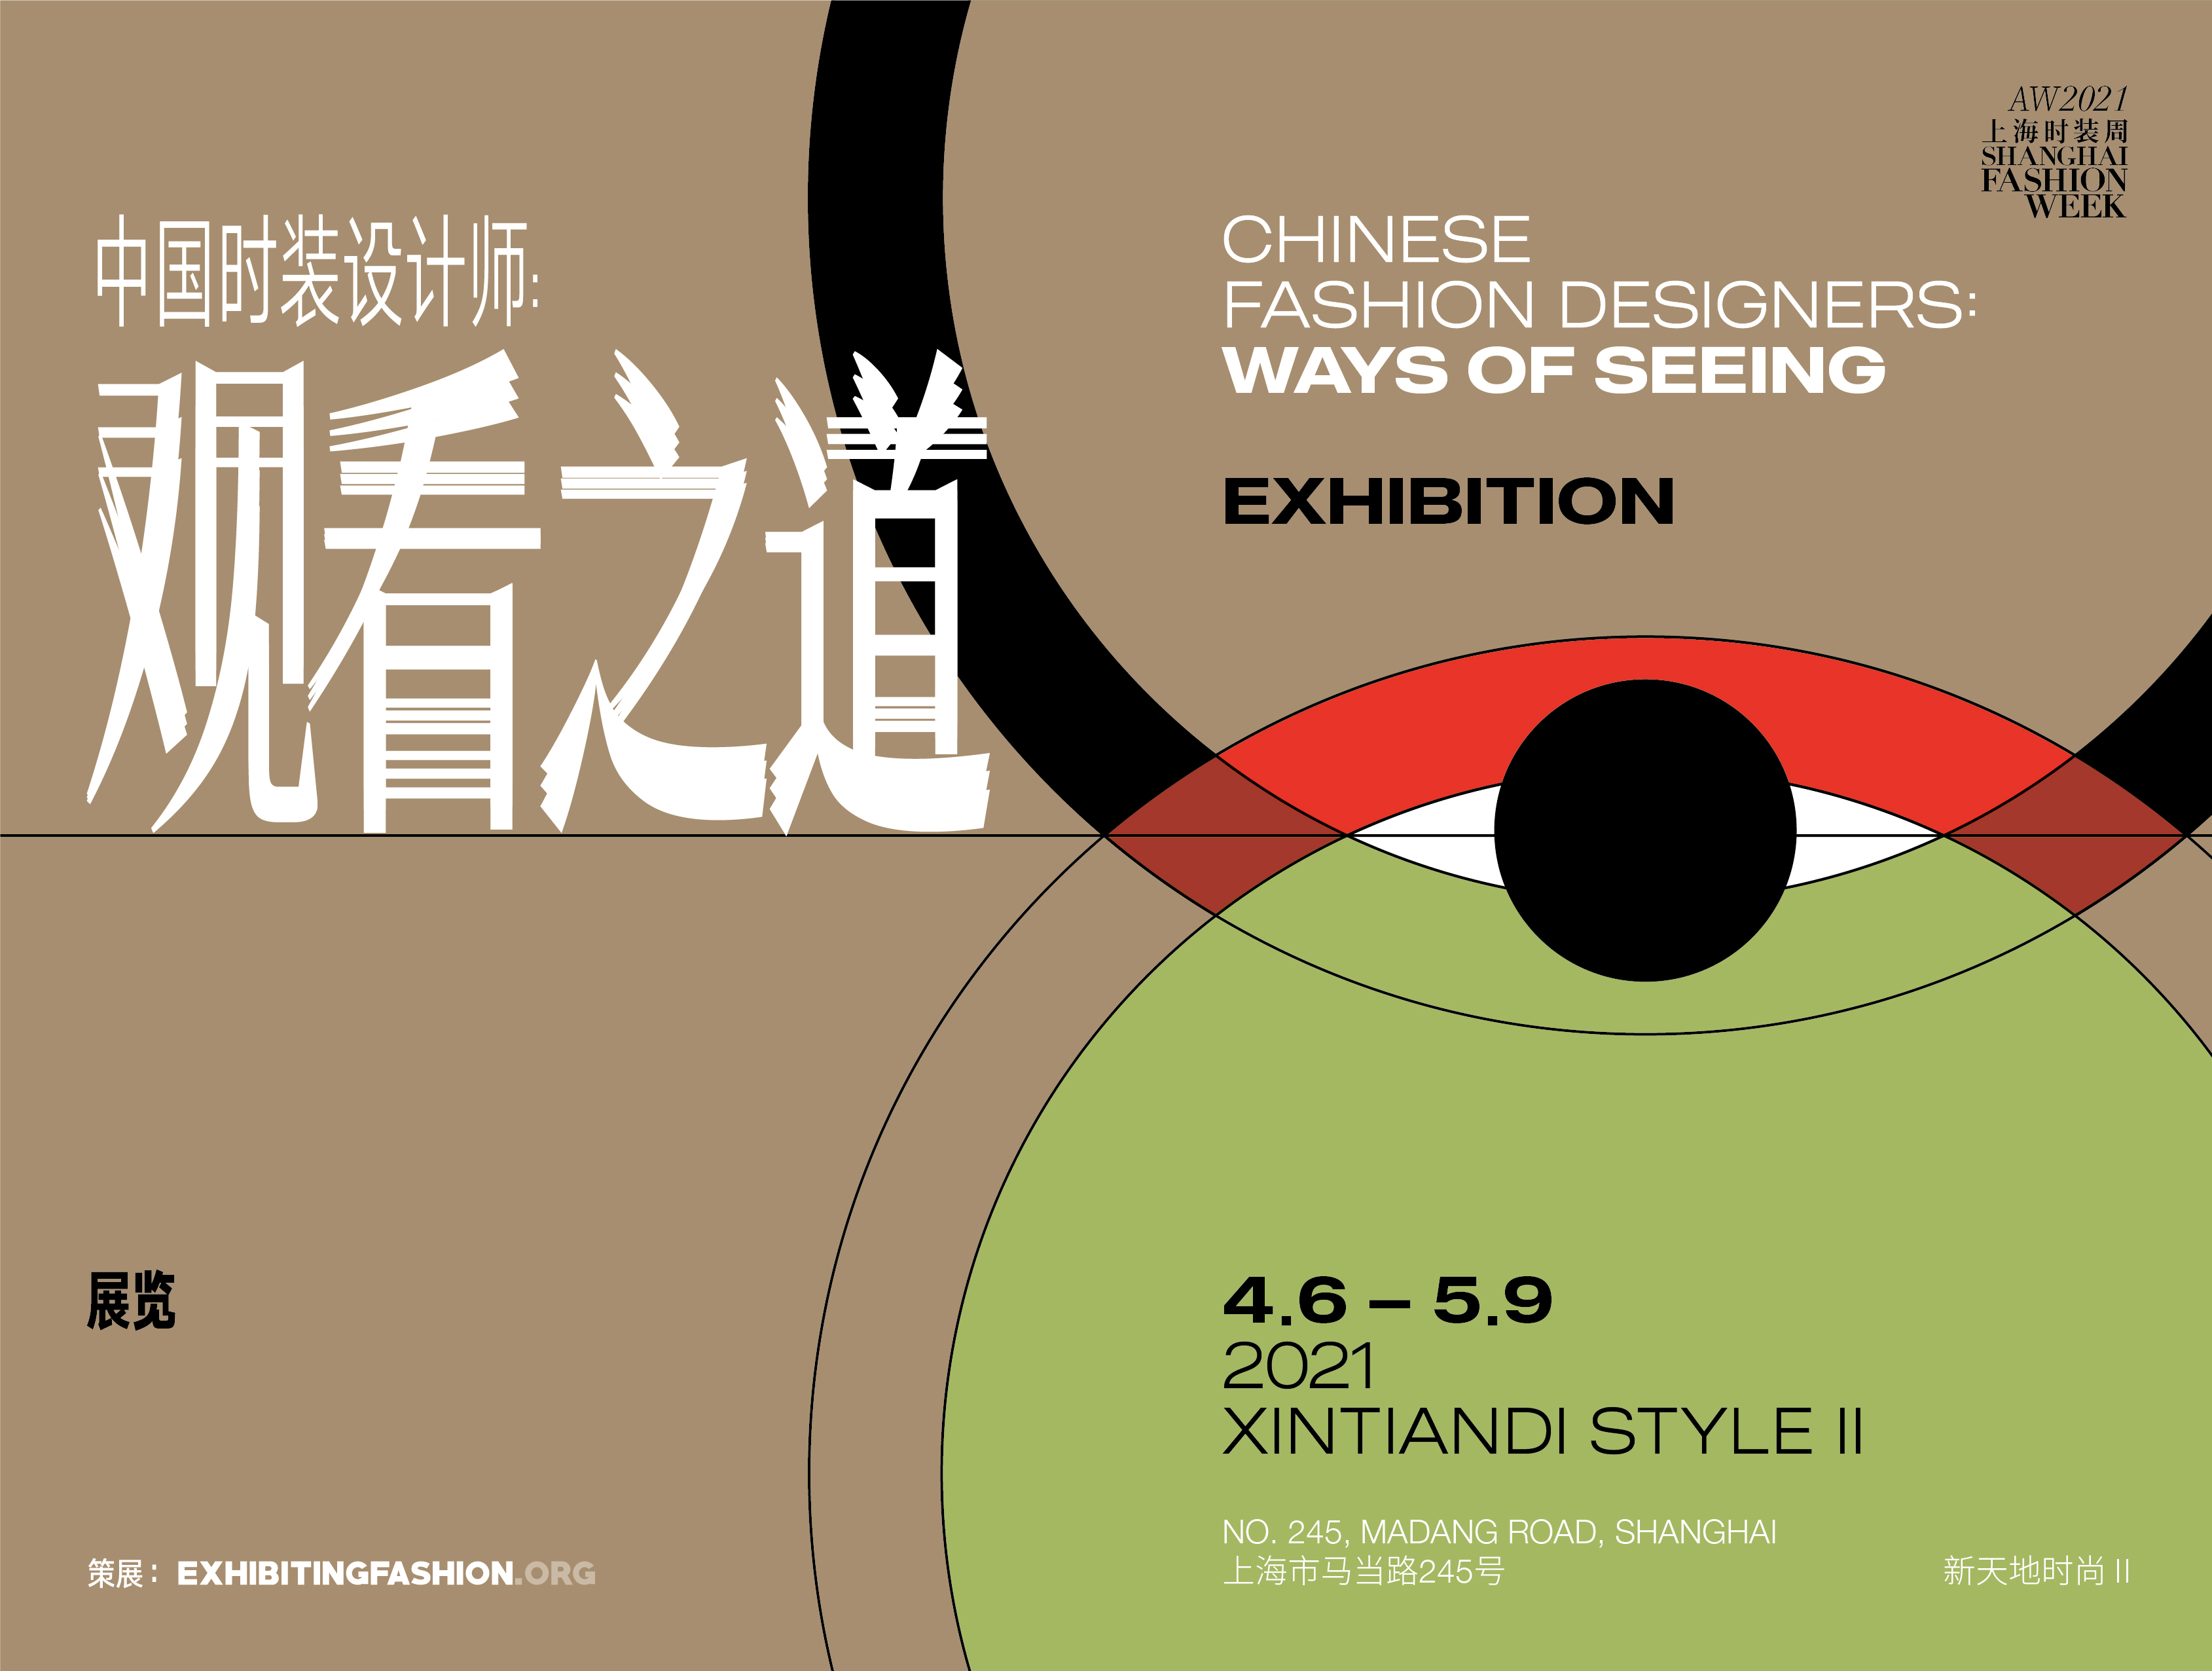 Poster of the exhibition